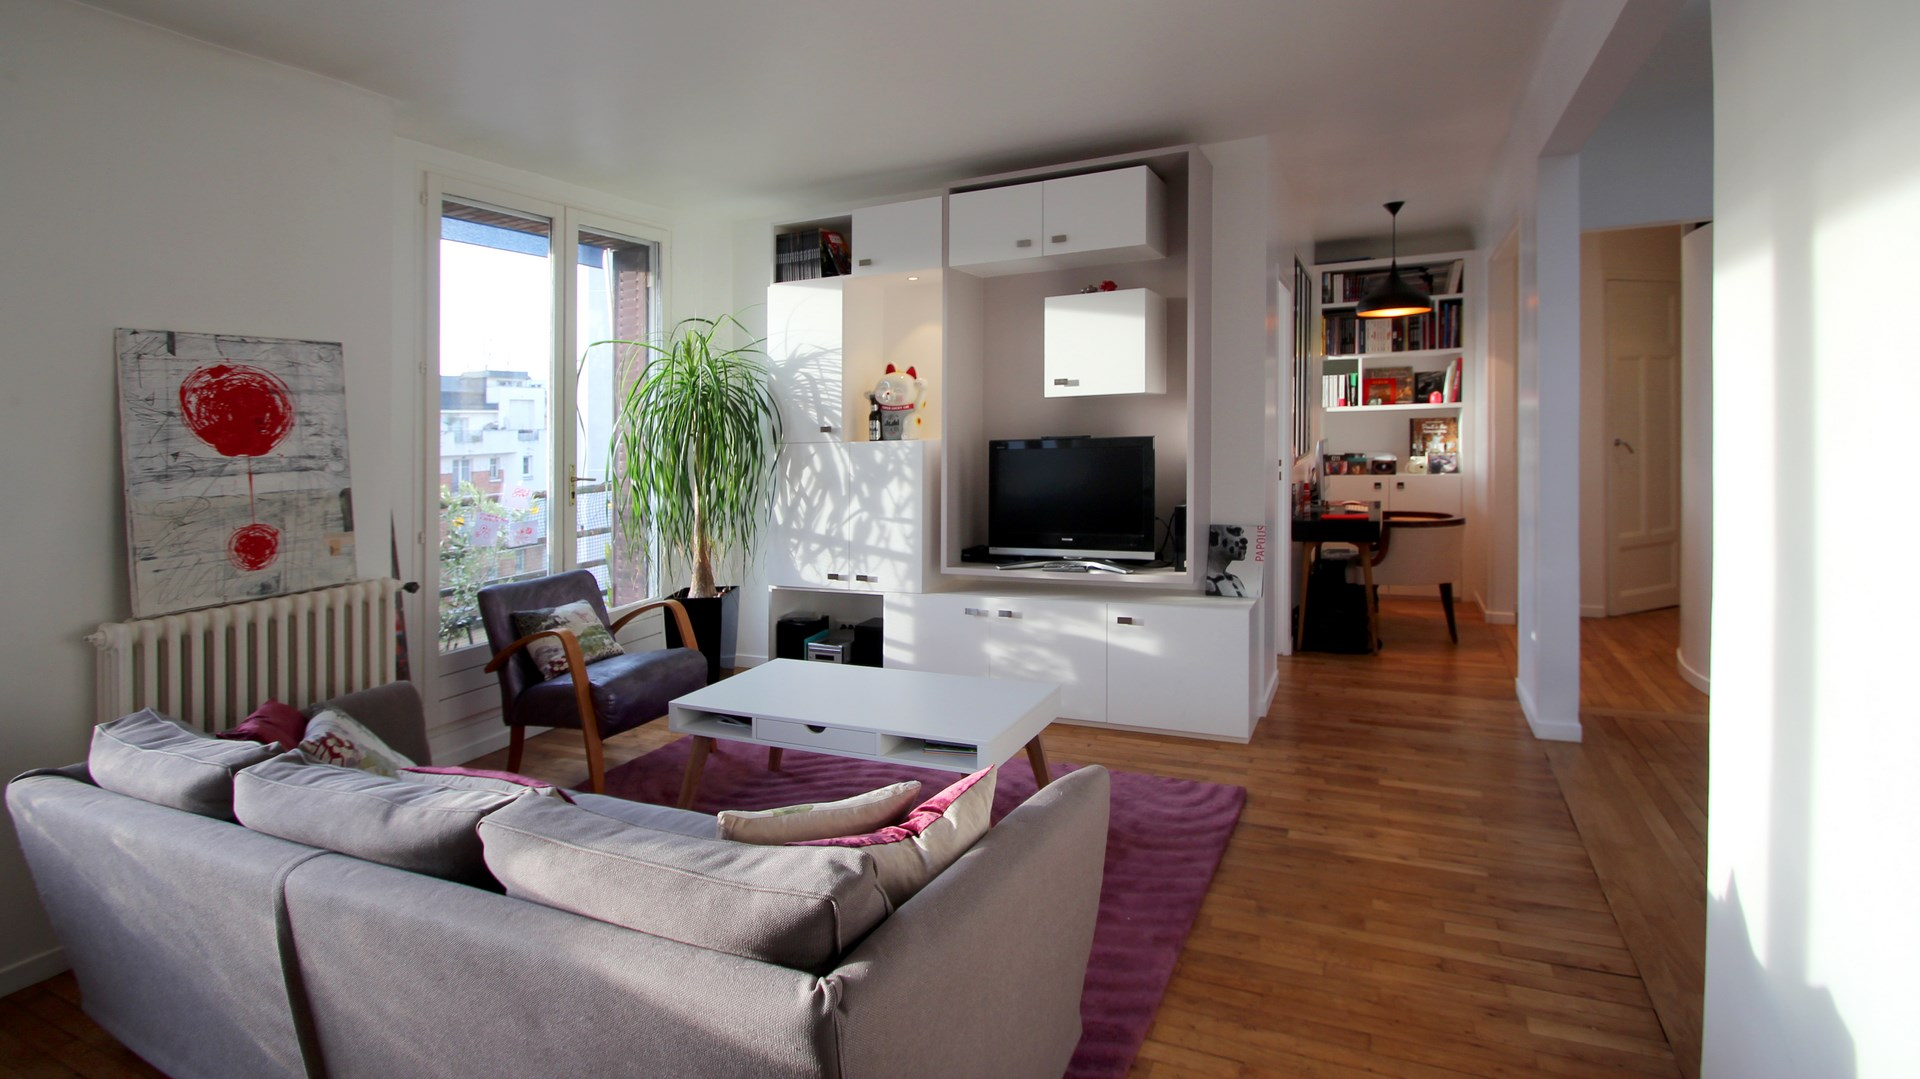 Amenagement Meuble Tv Conceptions De Maison Blanzza Com # Meuble Tv Architecte